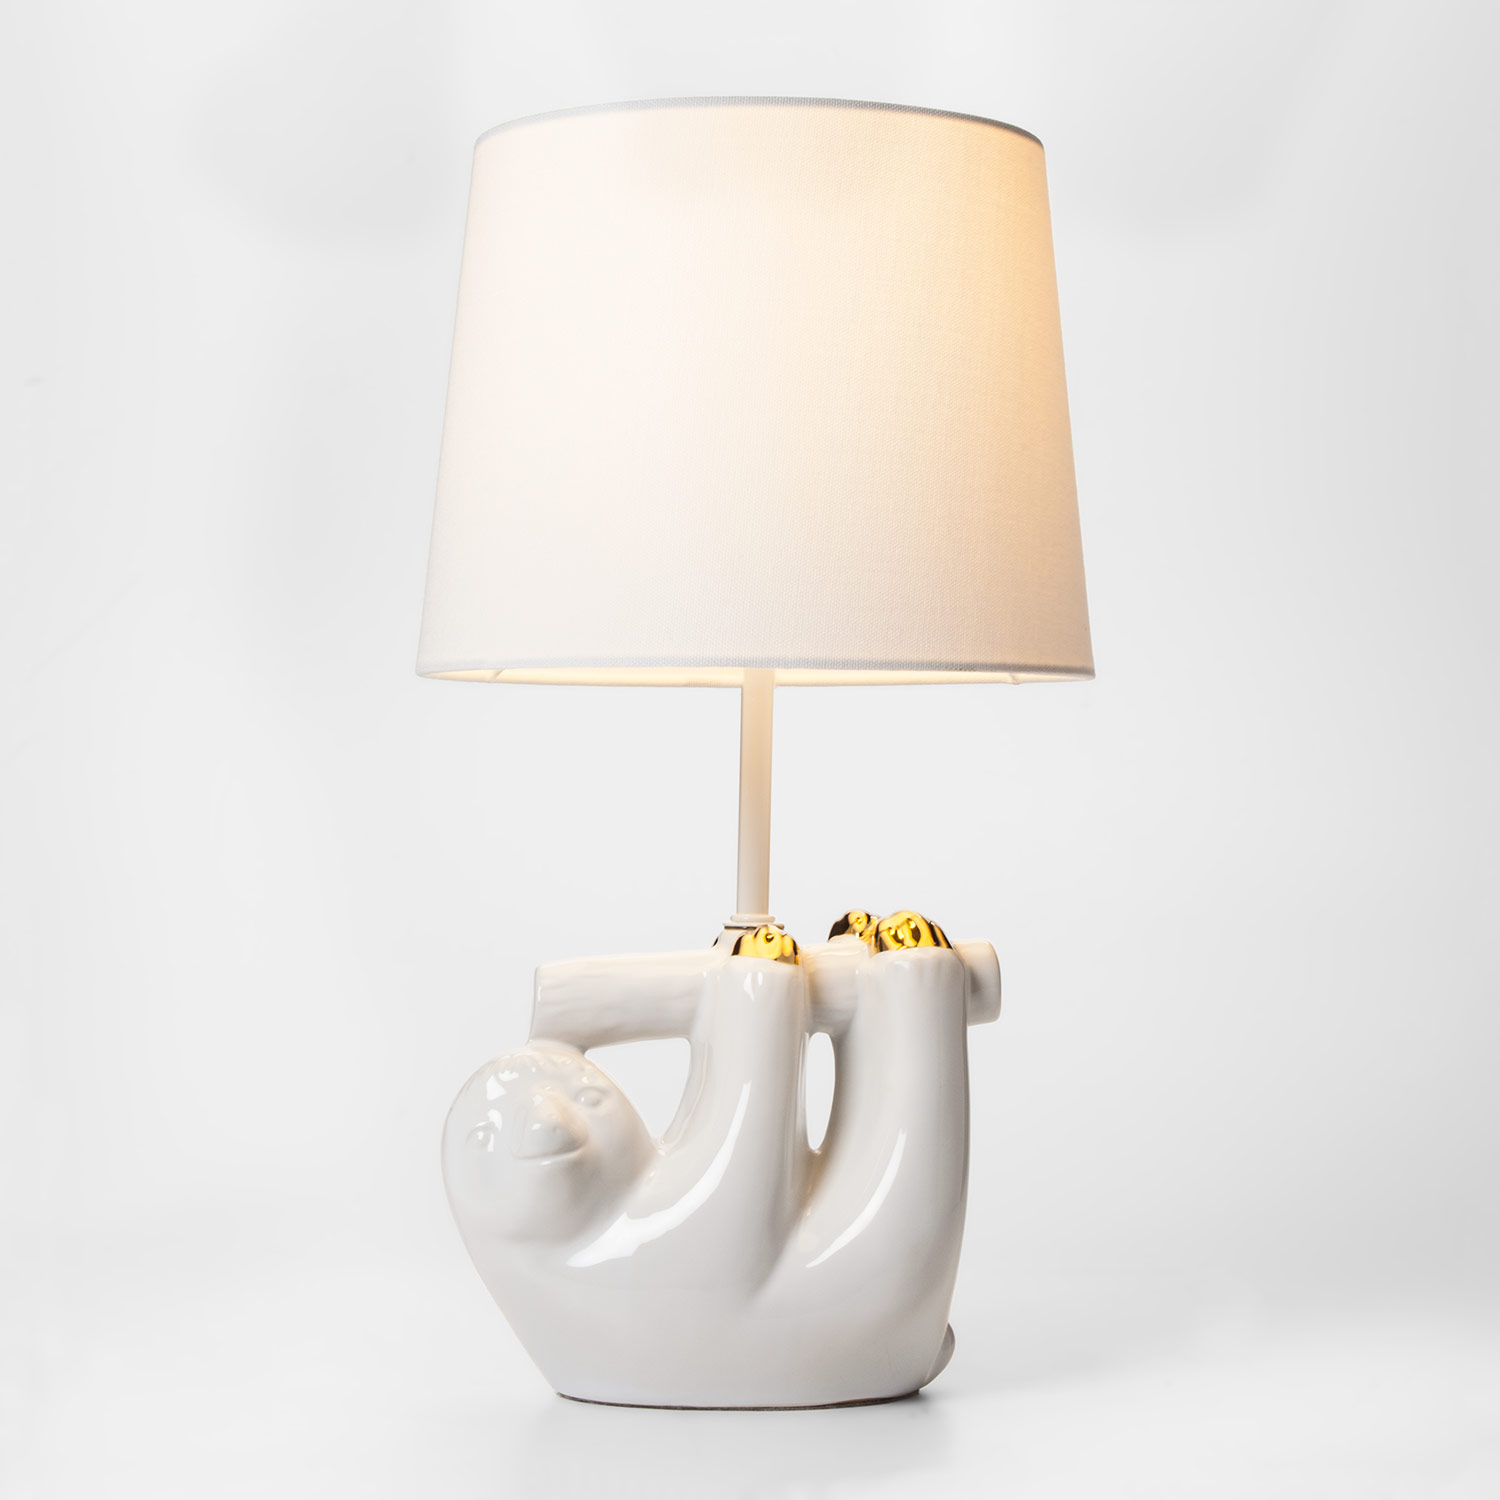 Sloth Table Lamp